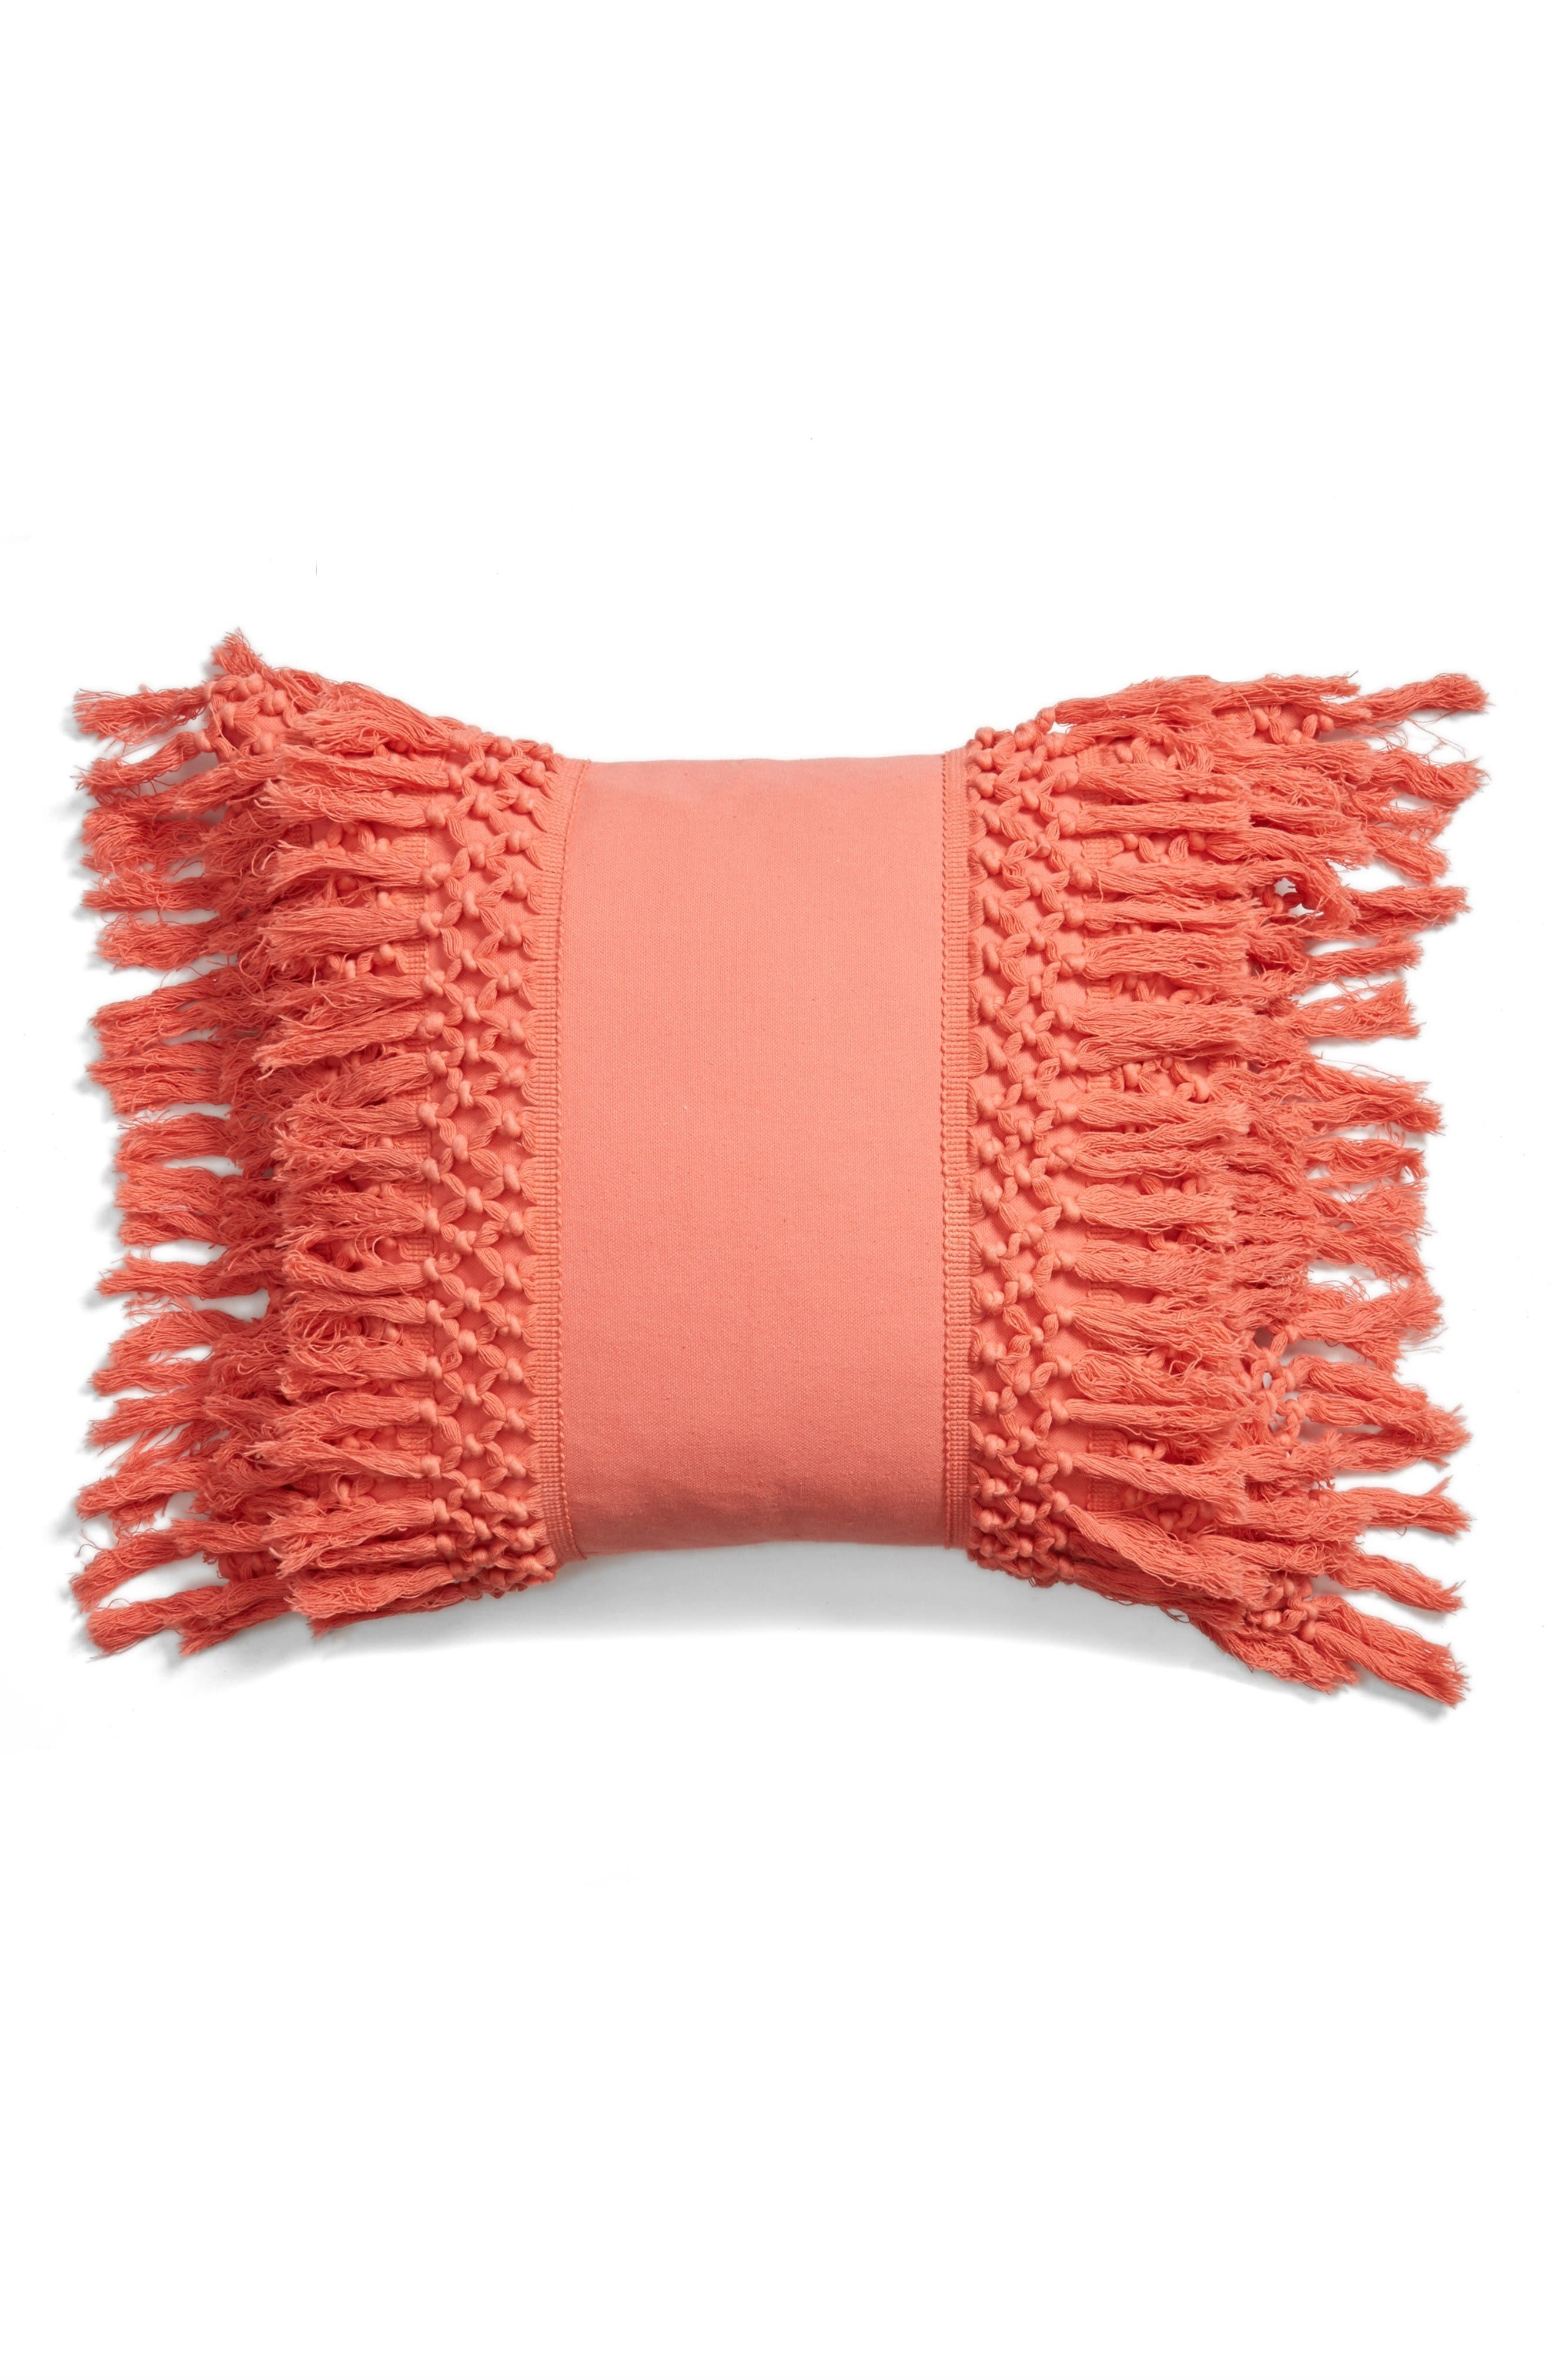 Main Image - Levtex Fringe Pillow